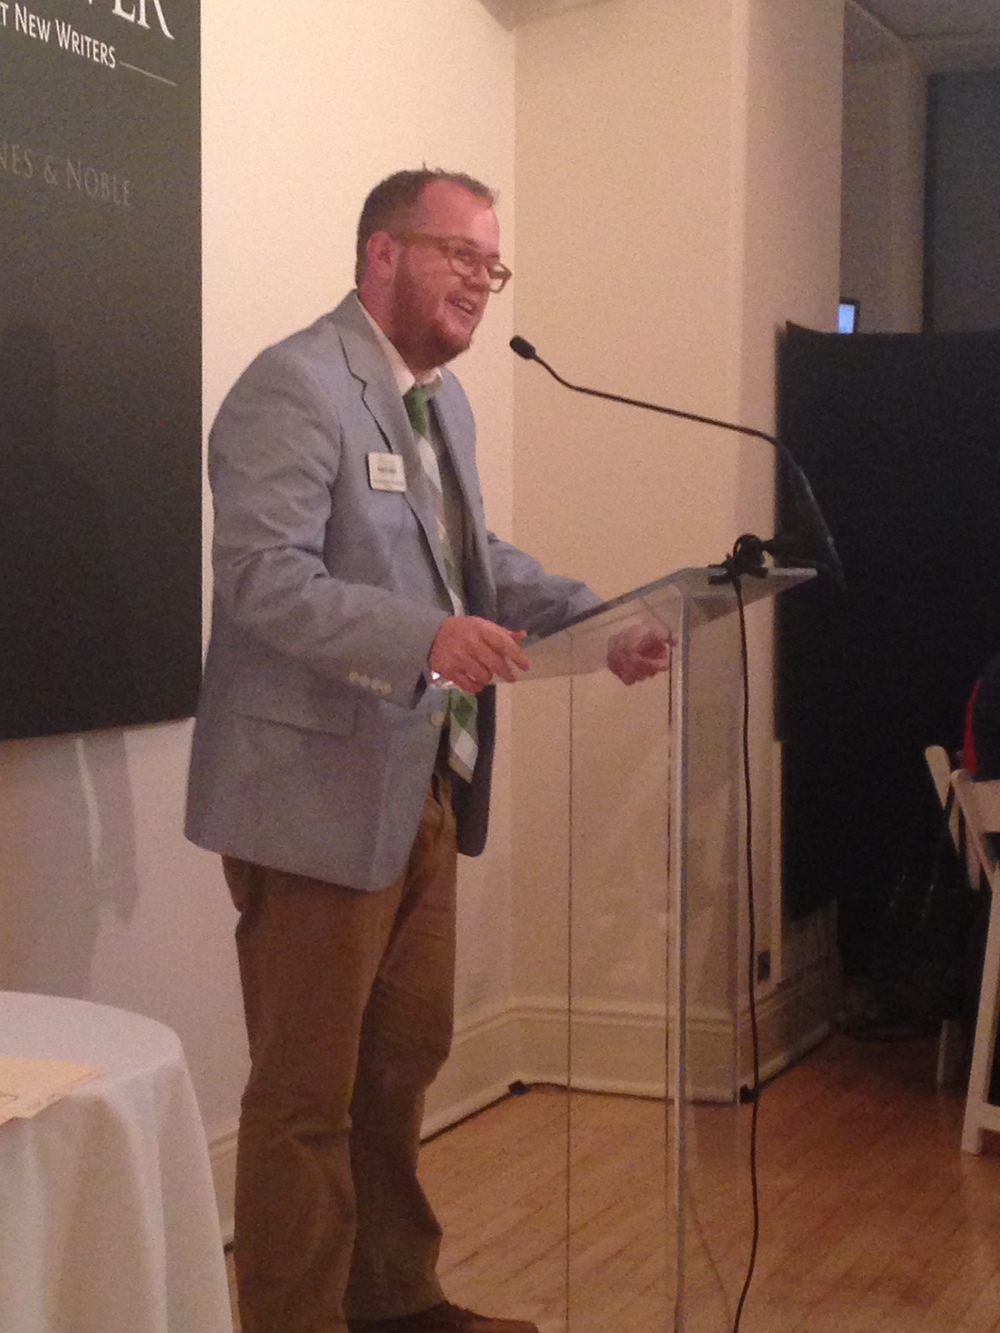 Arna Bontemps Hemenway accepting his third place Discover Great New Writers Award on March 4 in New York